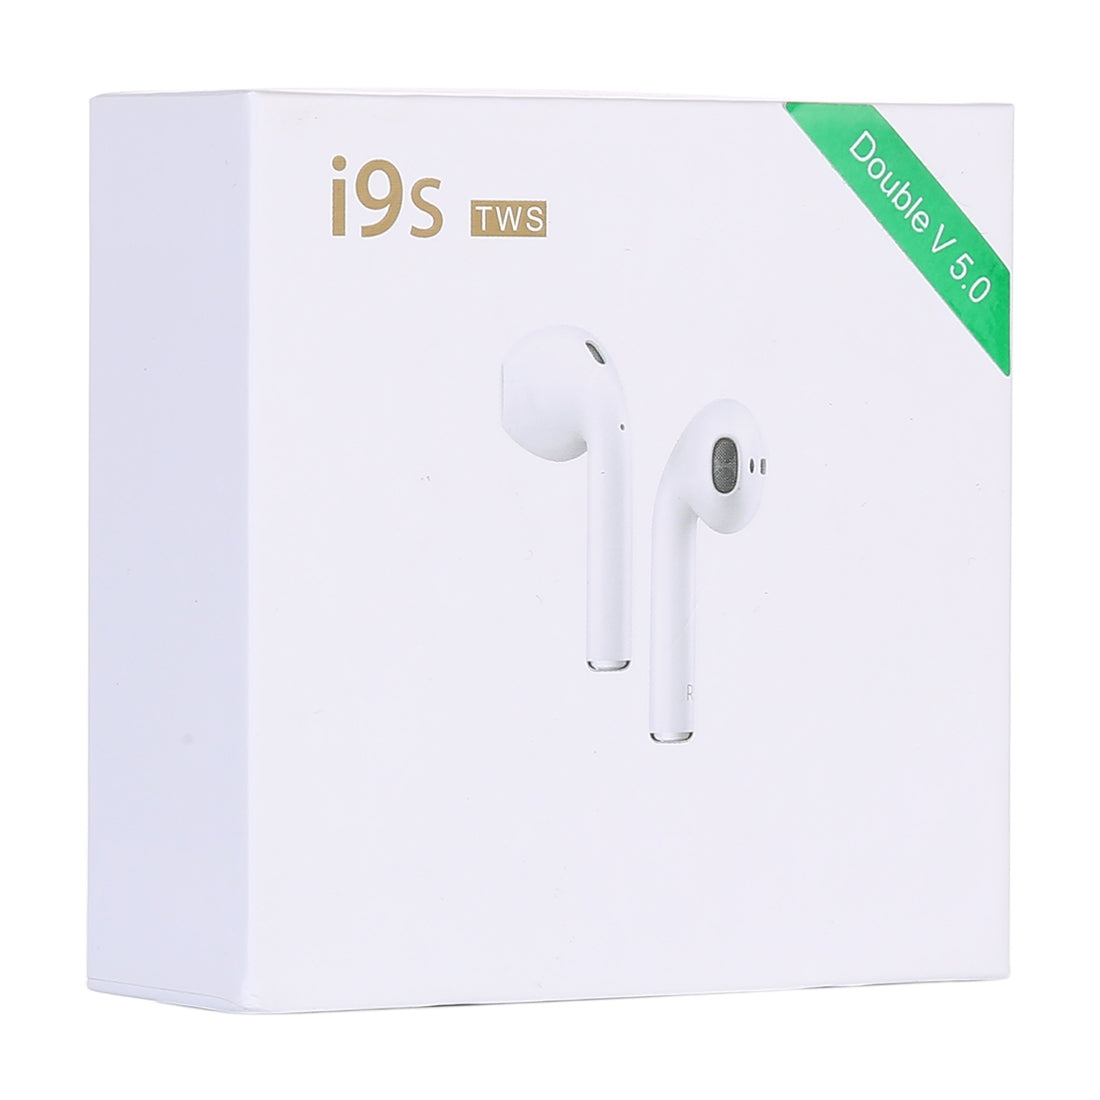 i9S-TWS Bluetooth V5.0 Wireless Stereo Earphones with Magnetic Charging Box, Compatible with iOS & Android(Yellow)